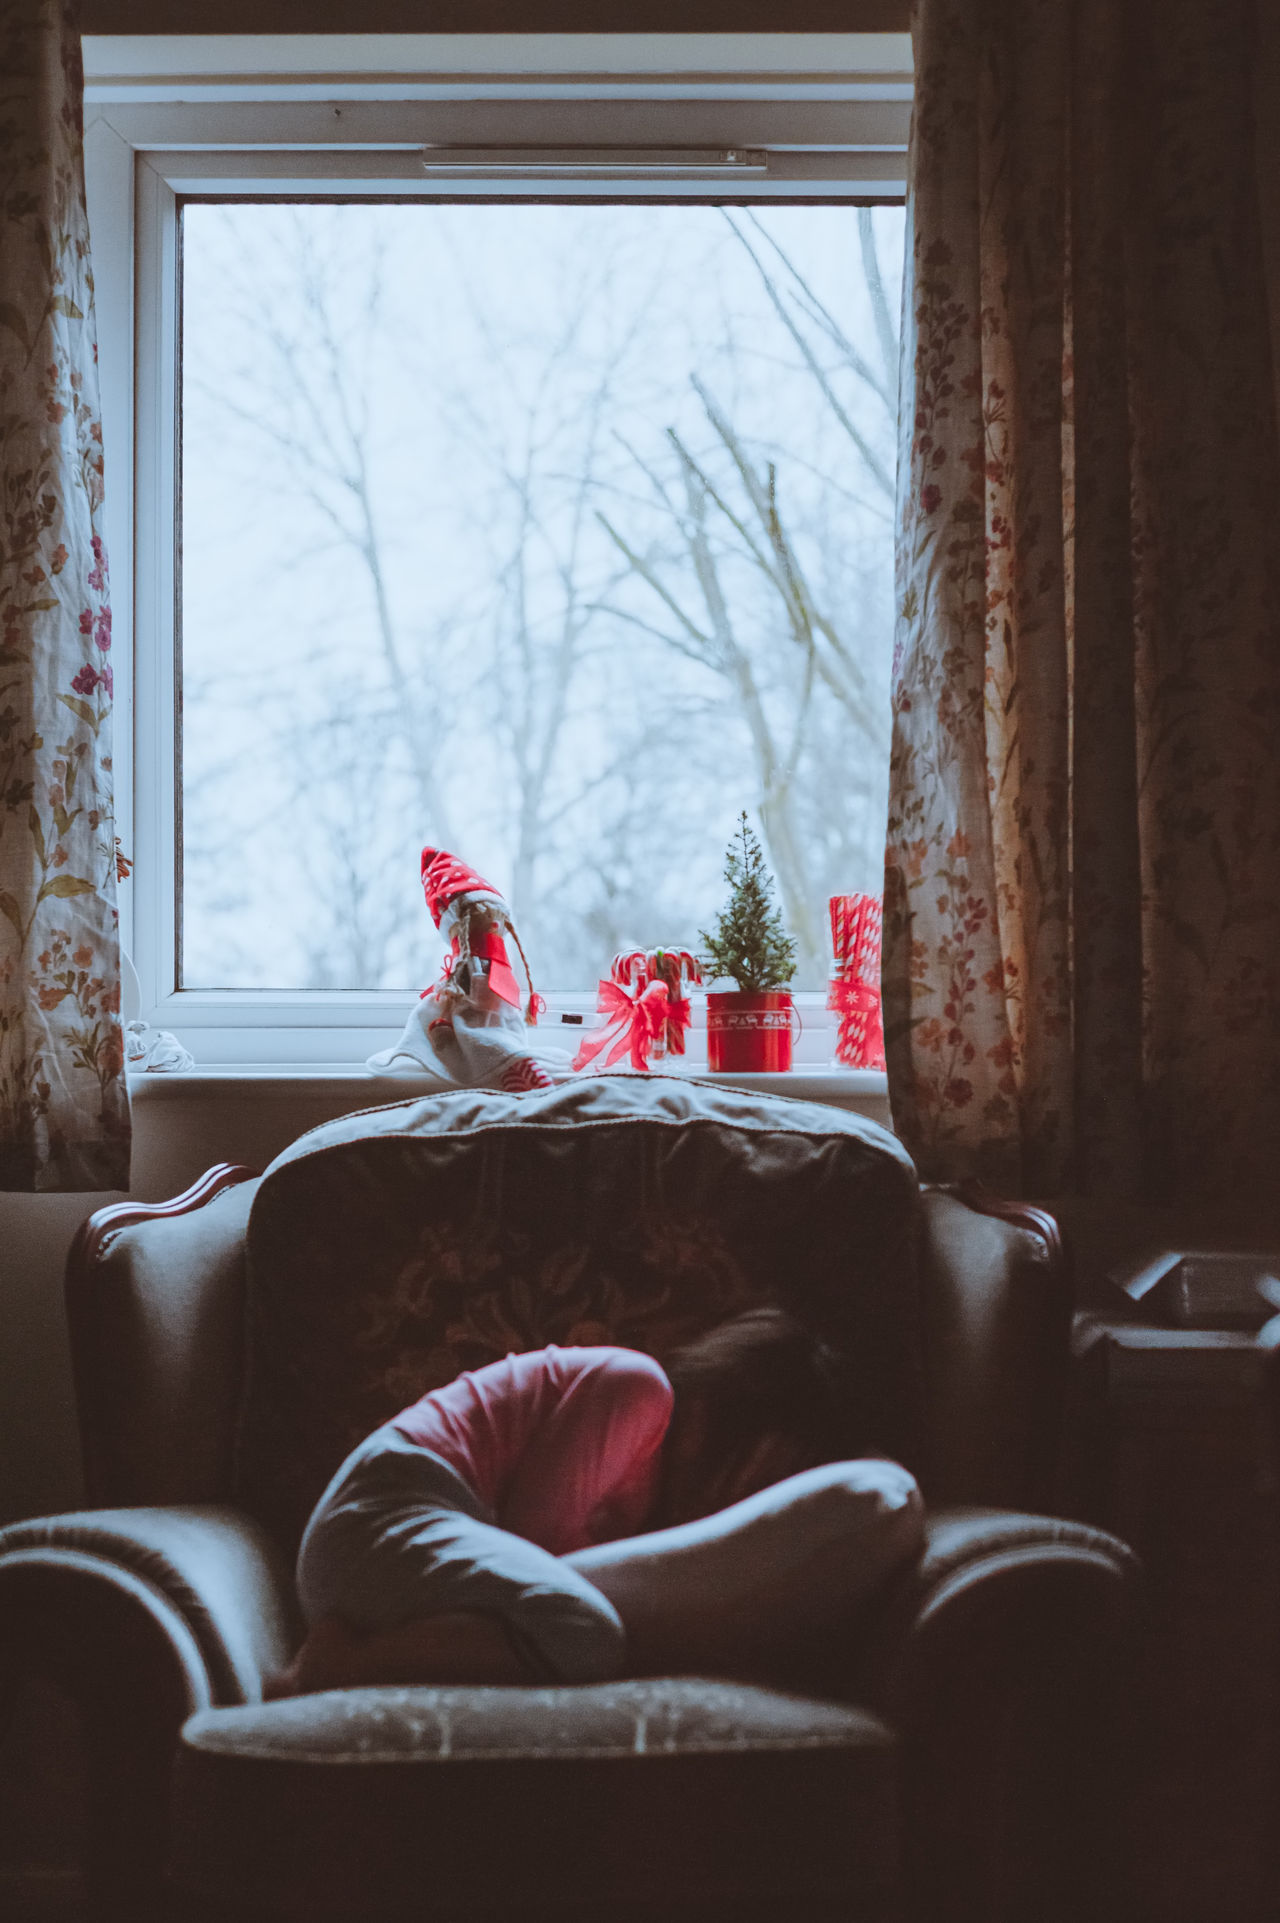 Beautiful stock photos of weihnachten, window, day, flower, no people